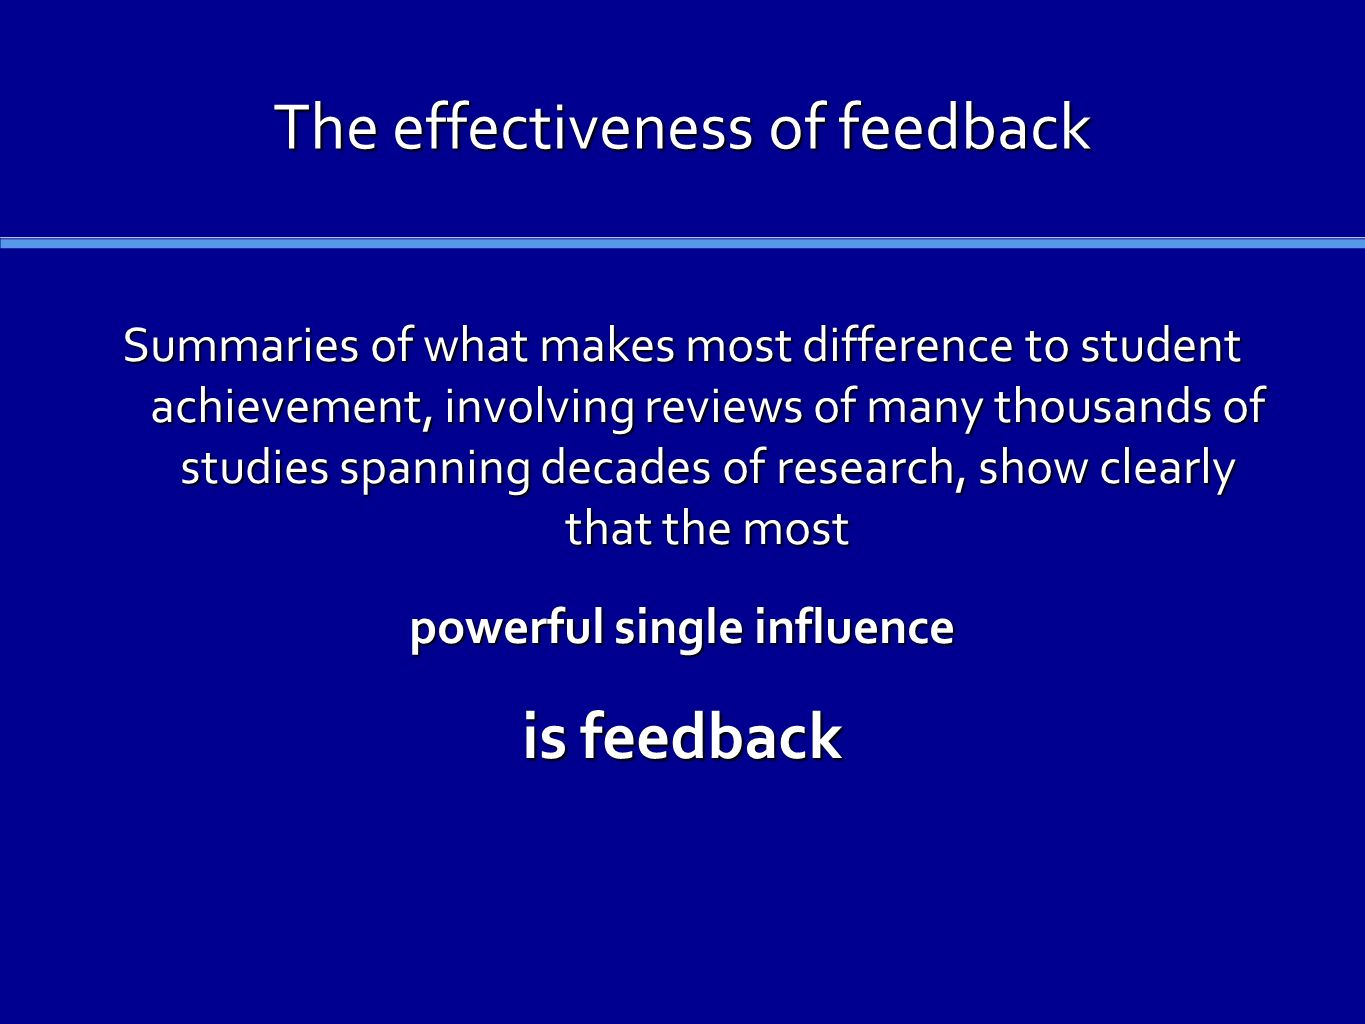 Good luck with inducting your students into assessment and feedback